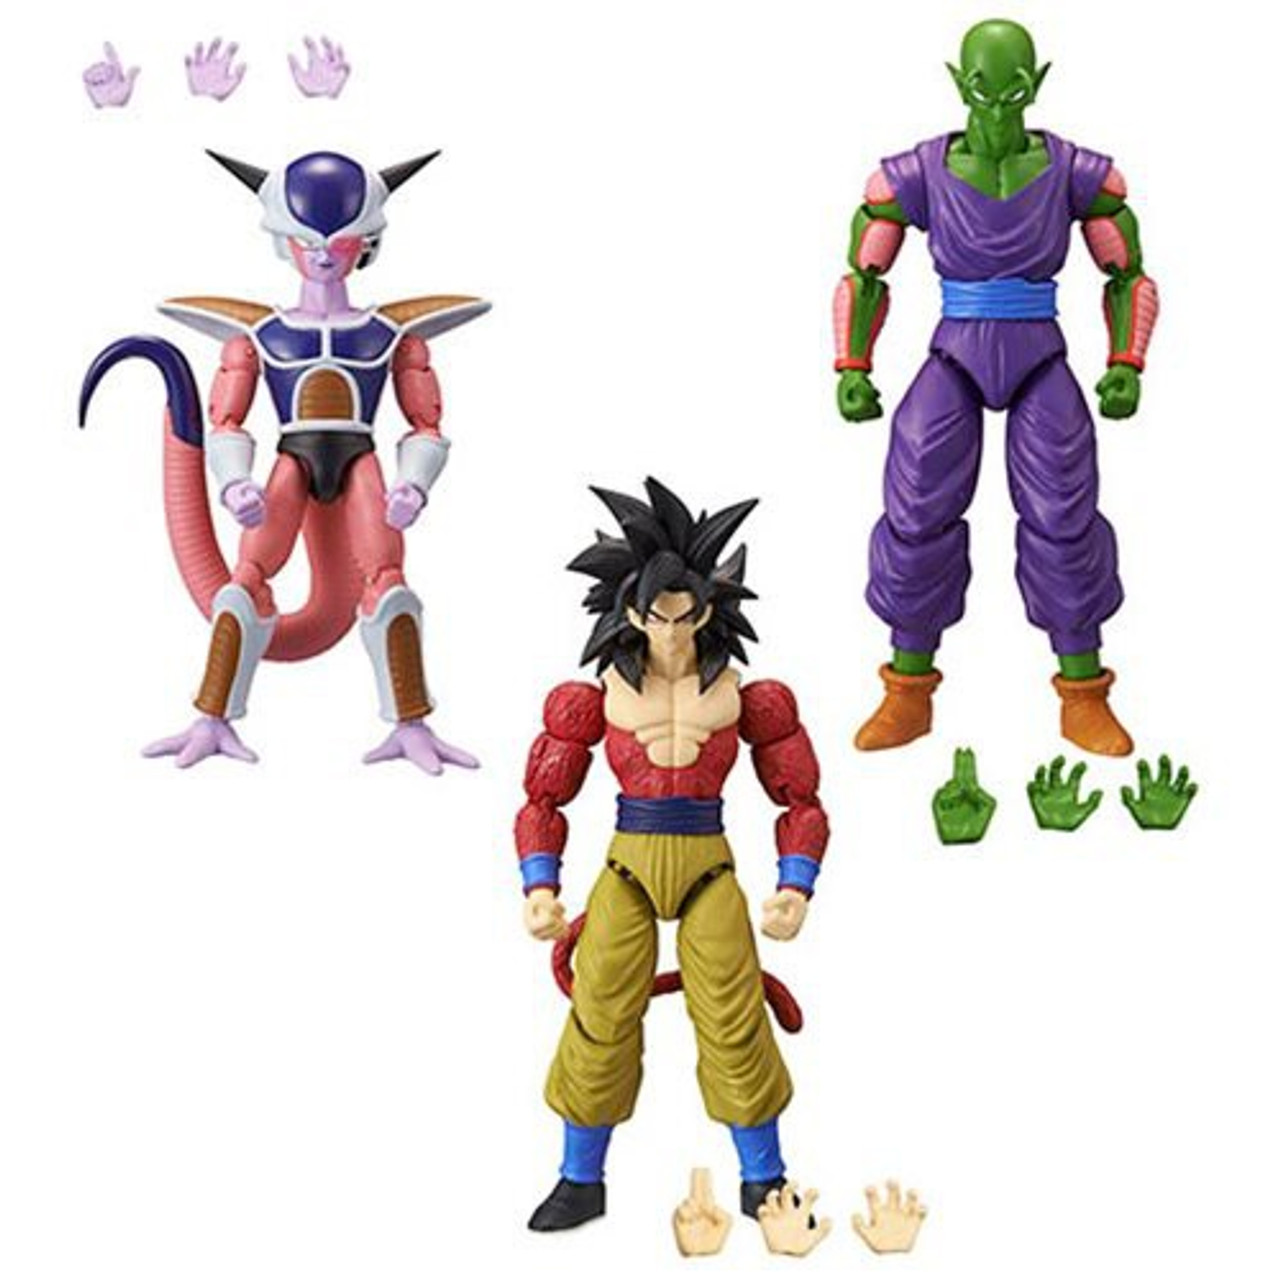 Dragon Ball Super Dragon Stars Series 9 Super Siayan 4 Son Goku Piccolo 1st Form Frieza Set Of 3 Action Figures Build A Figure